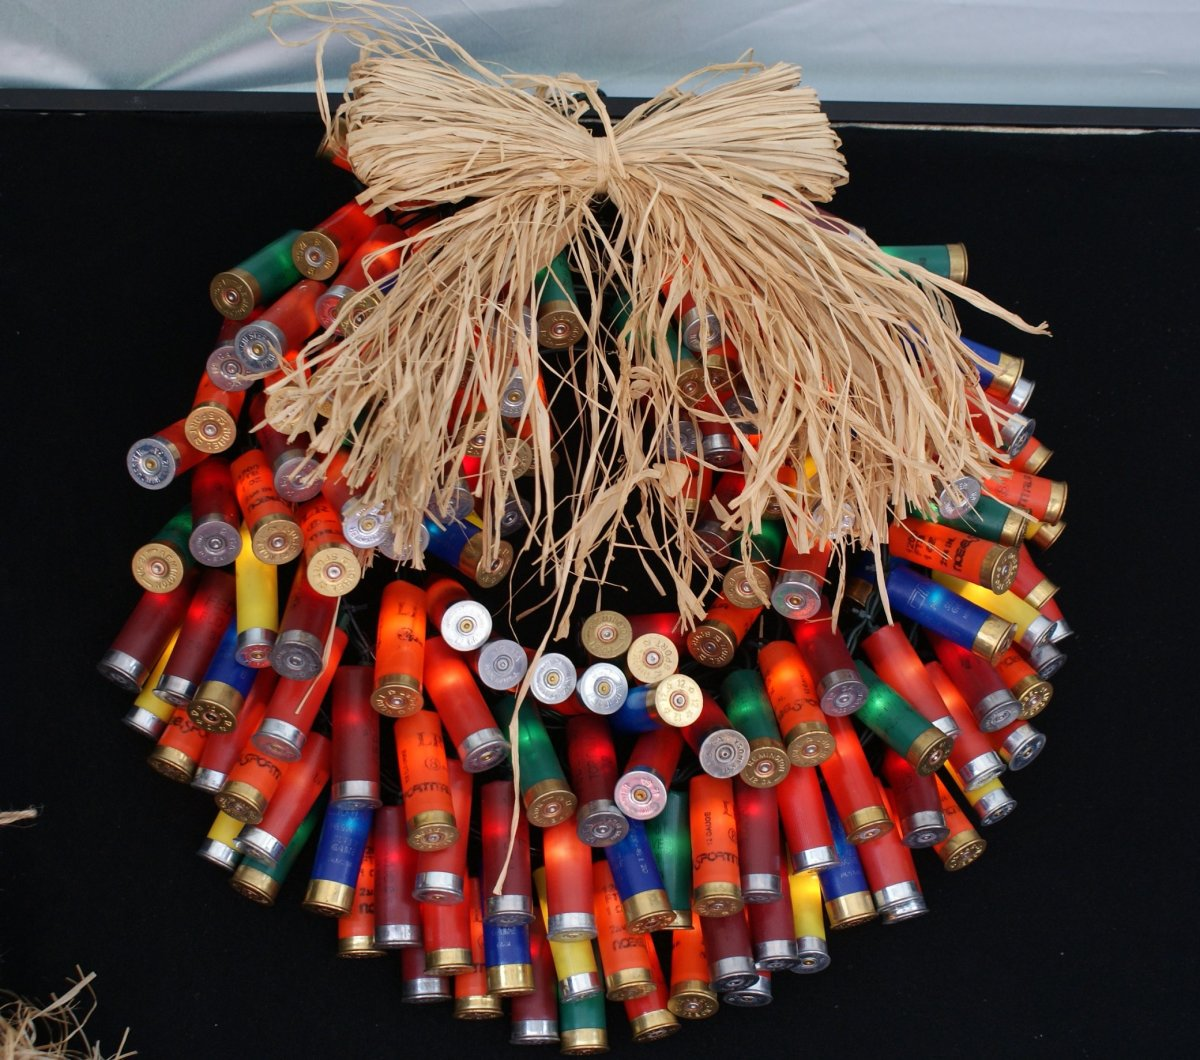 Celebrate a purty redneck Christmas with a shotgun shell wreath.